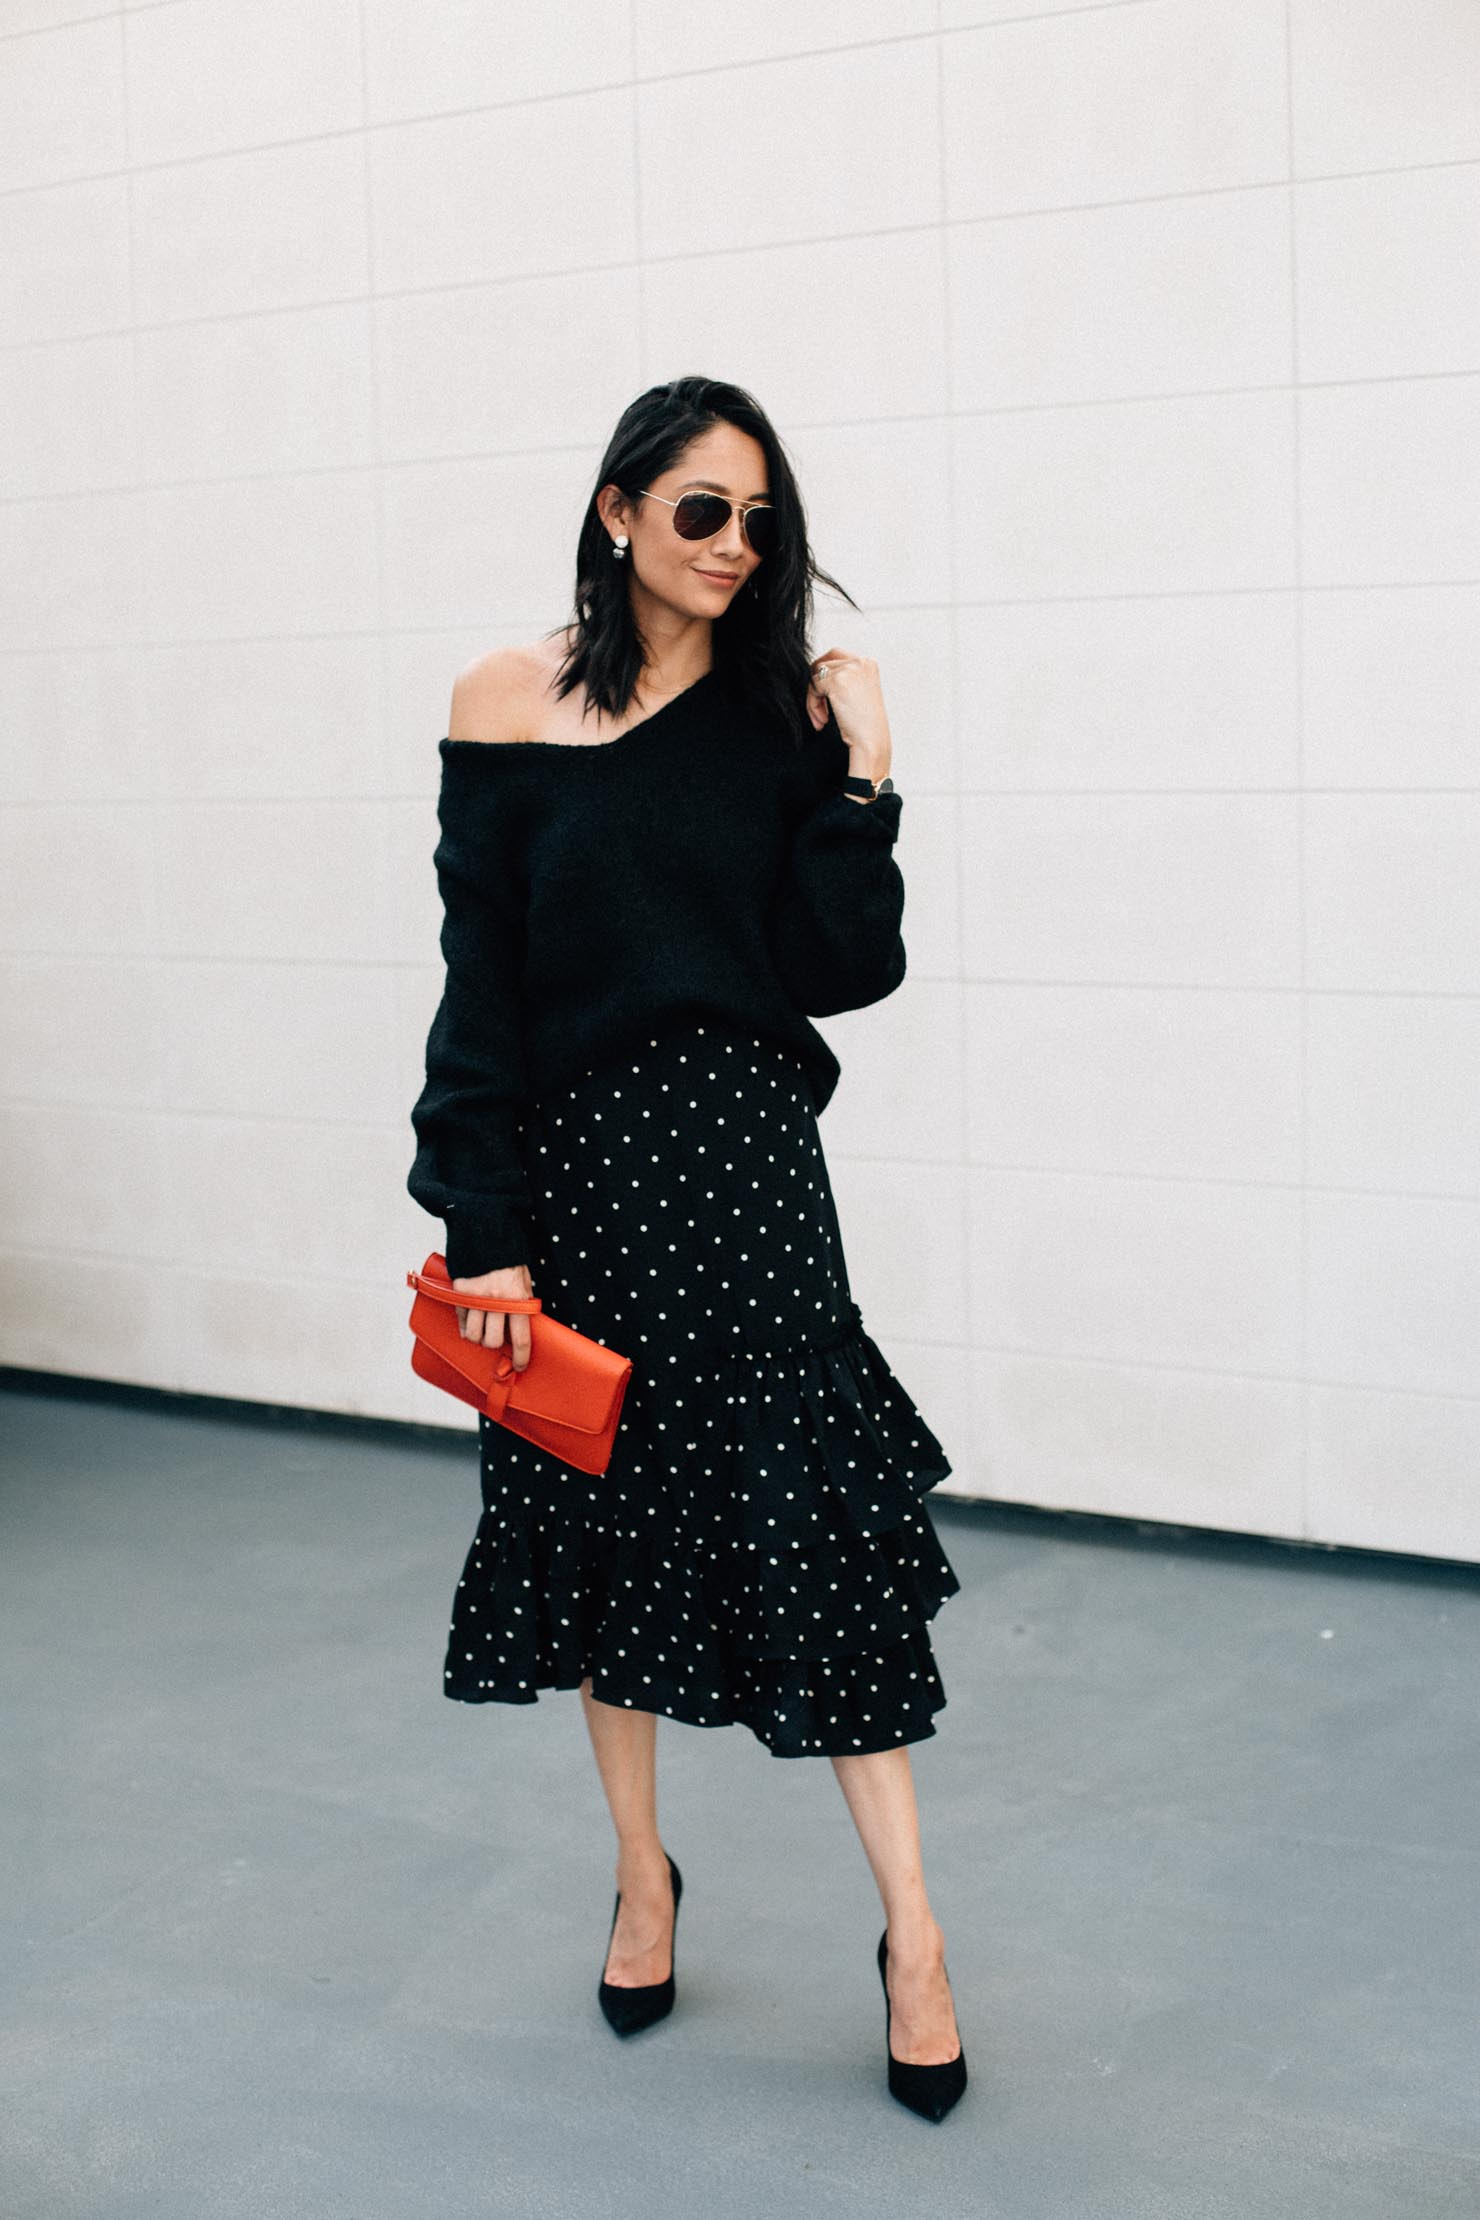 Thanksgiving Outfit Idea. Black oversized sweater, polka dot midi skirt, suede pumps and red clutch